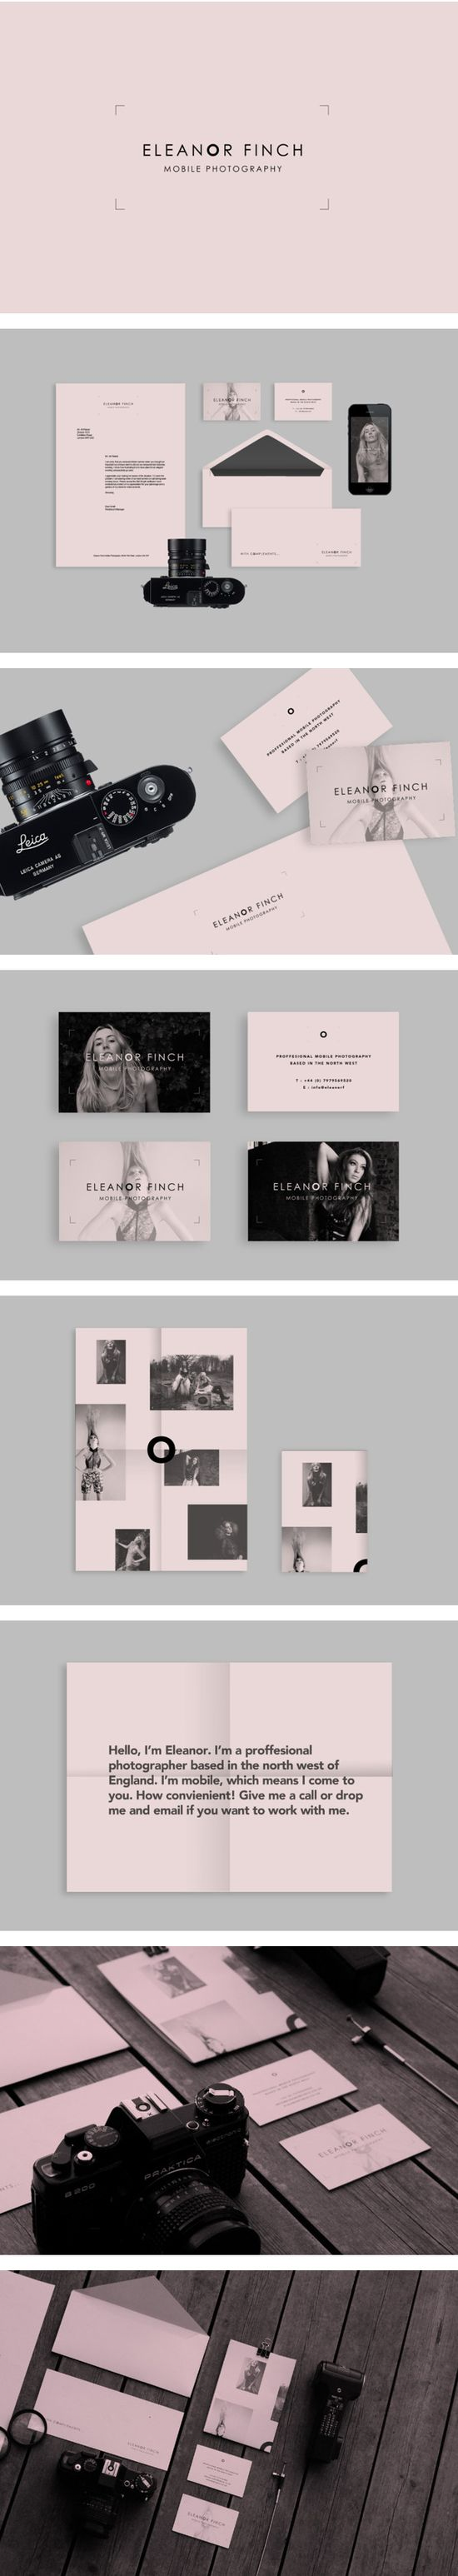 <> Eleanor Finch Photography by Sam Lane, via Behance